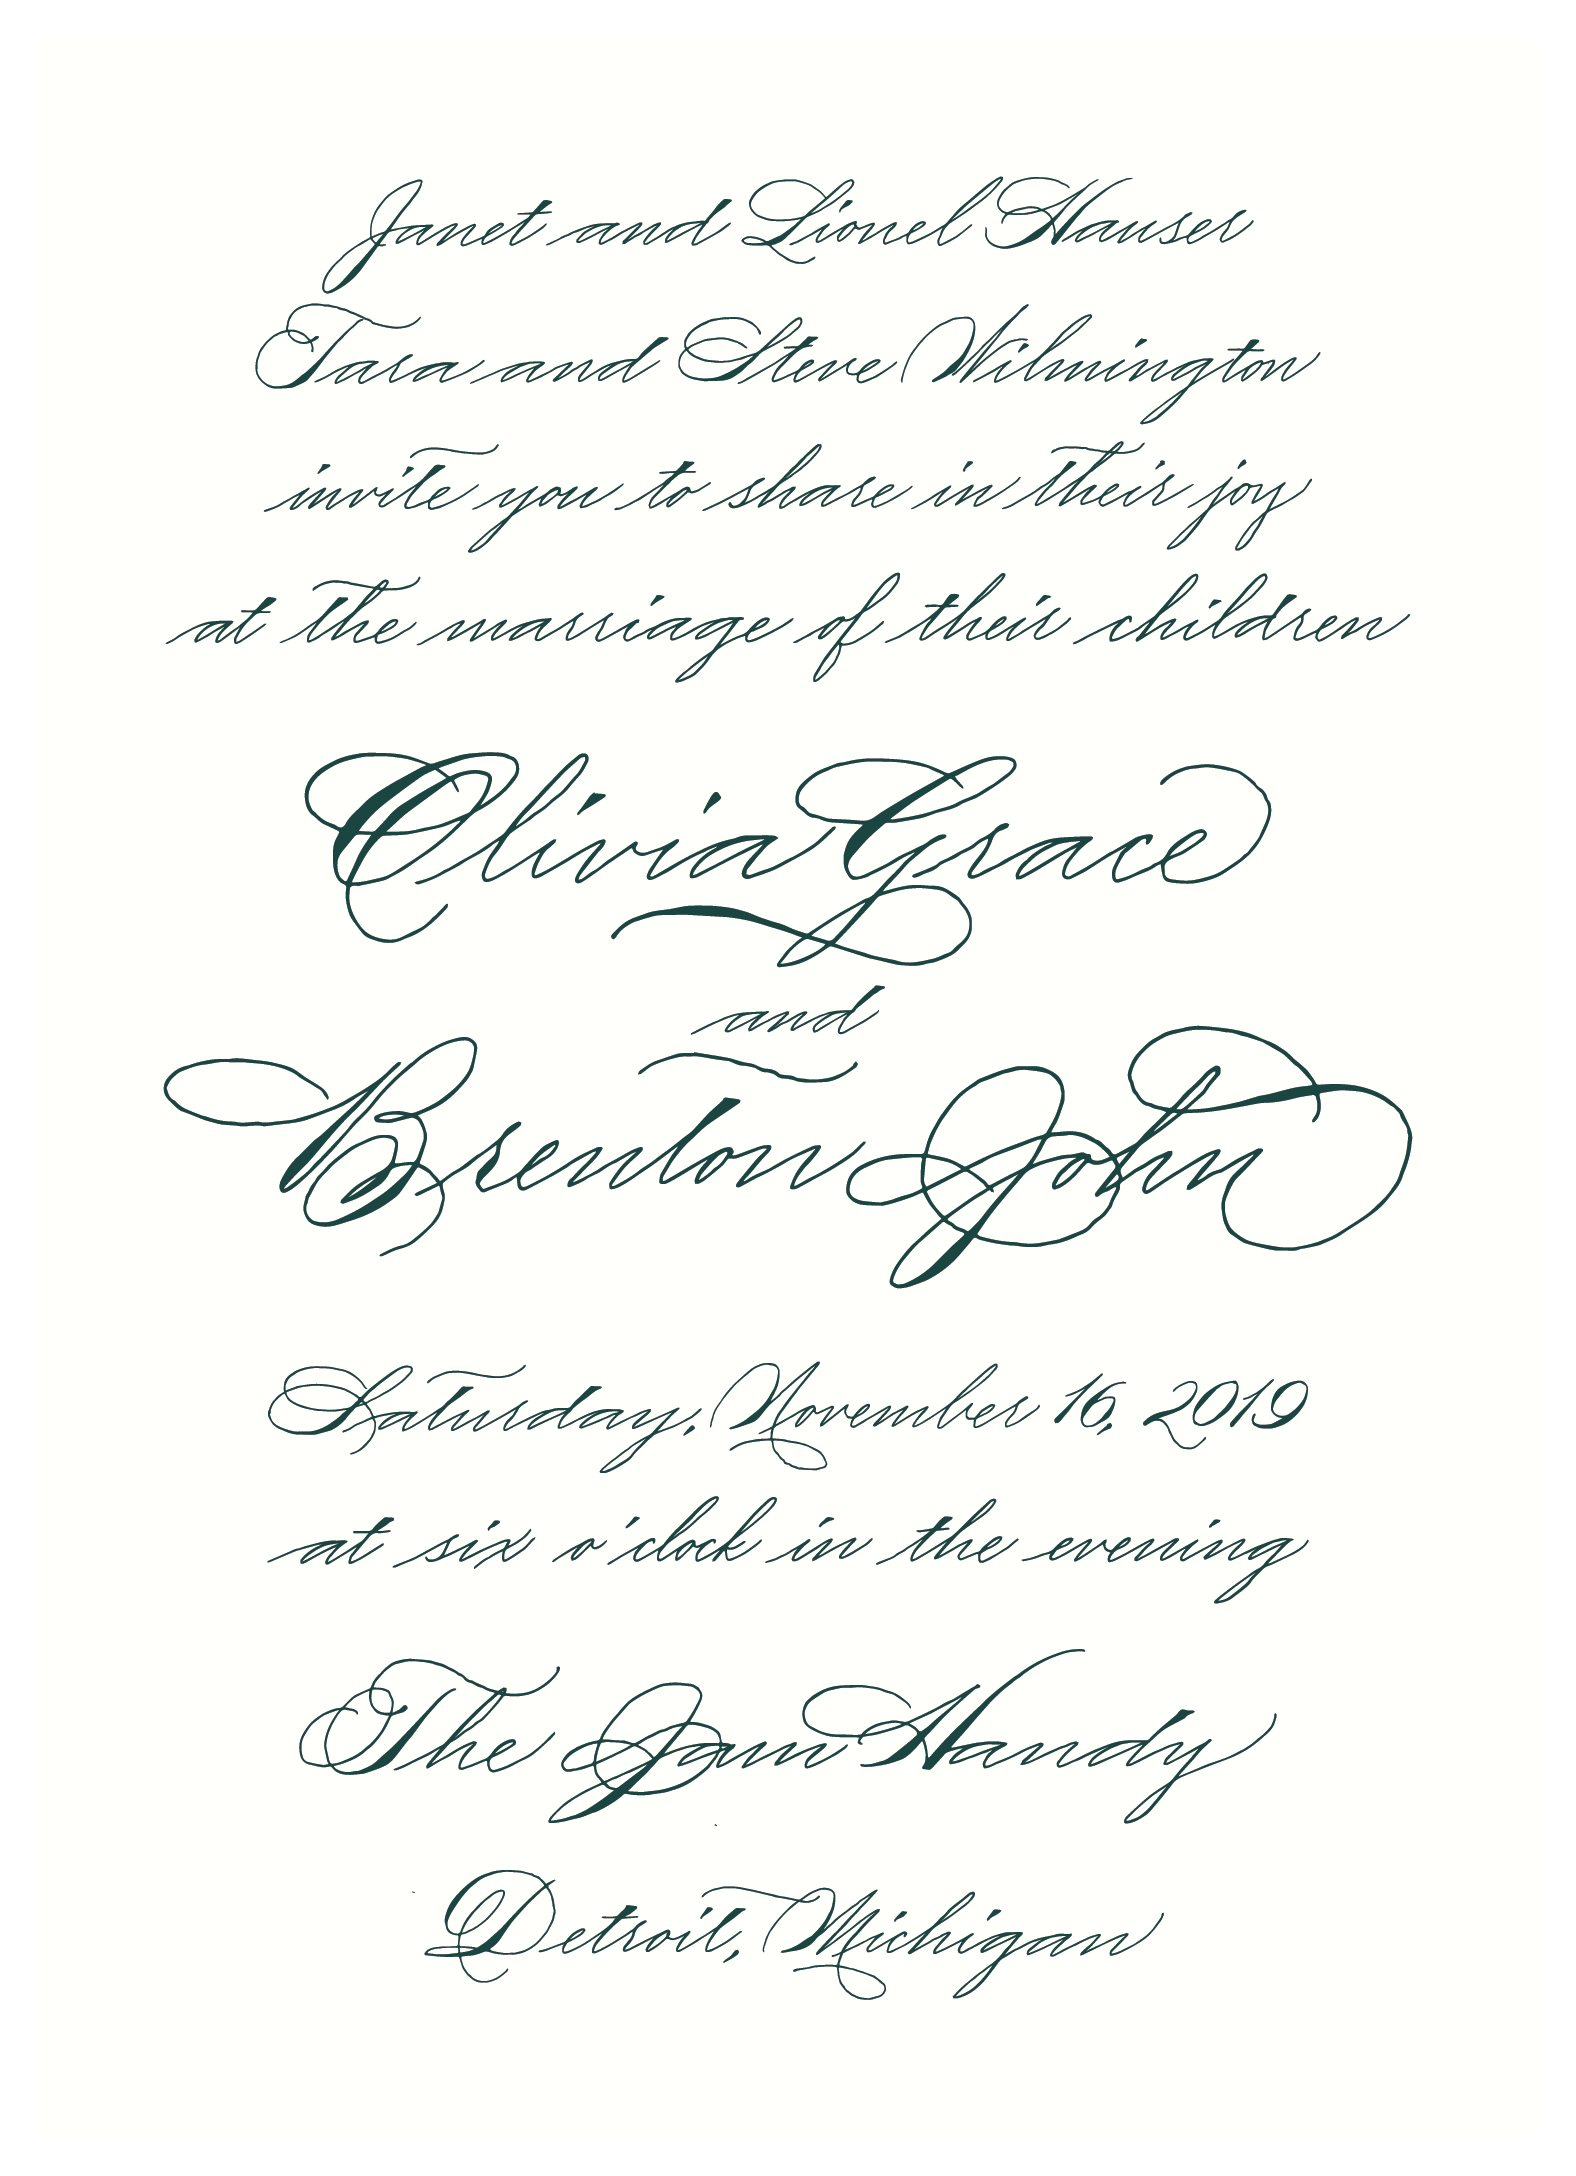 Forest green wedding invitation with traditional calligraphy from Leah E. Moss Designs